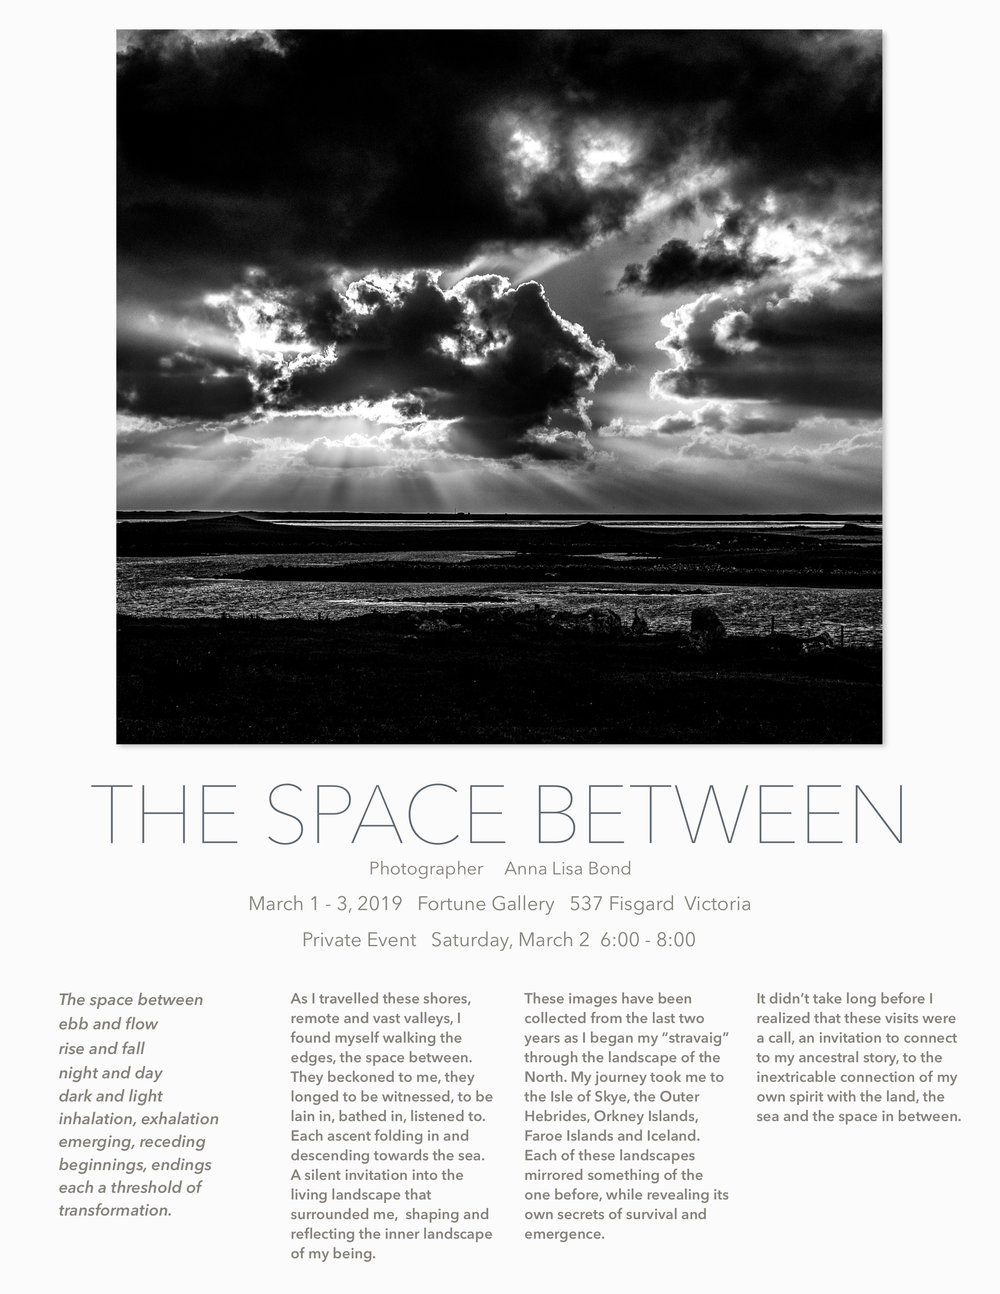 The Space Between - Anna Lisa Bond - March 1 - 3 2019